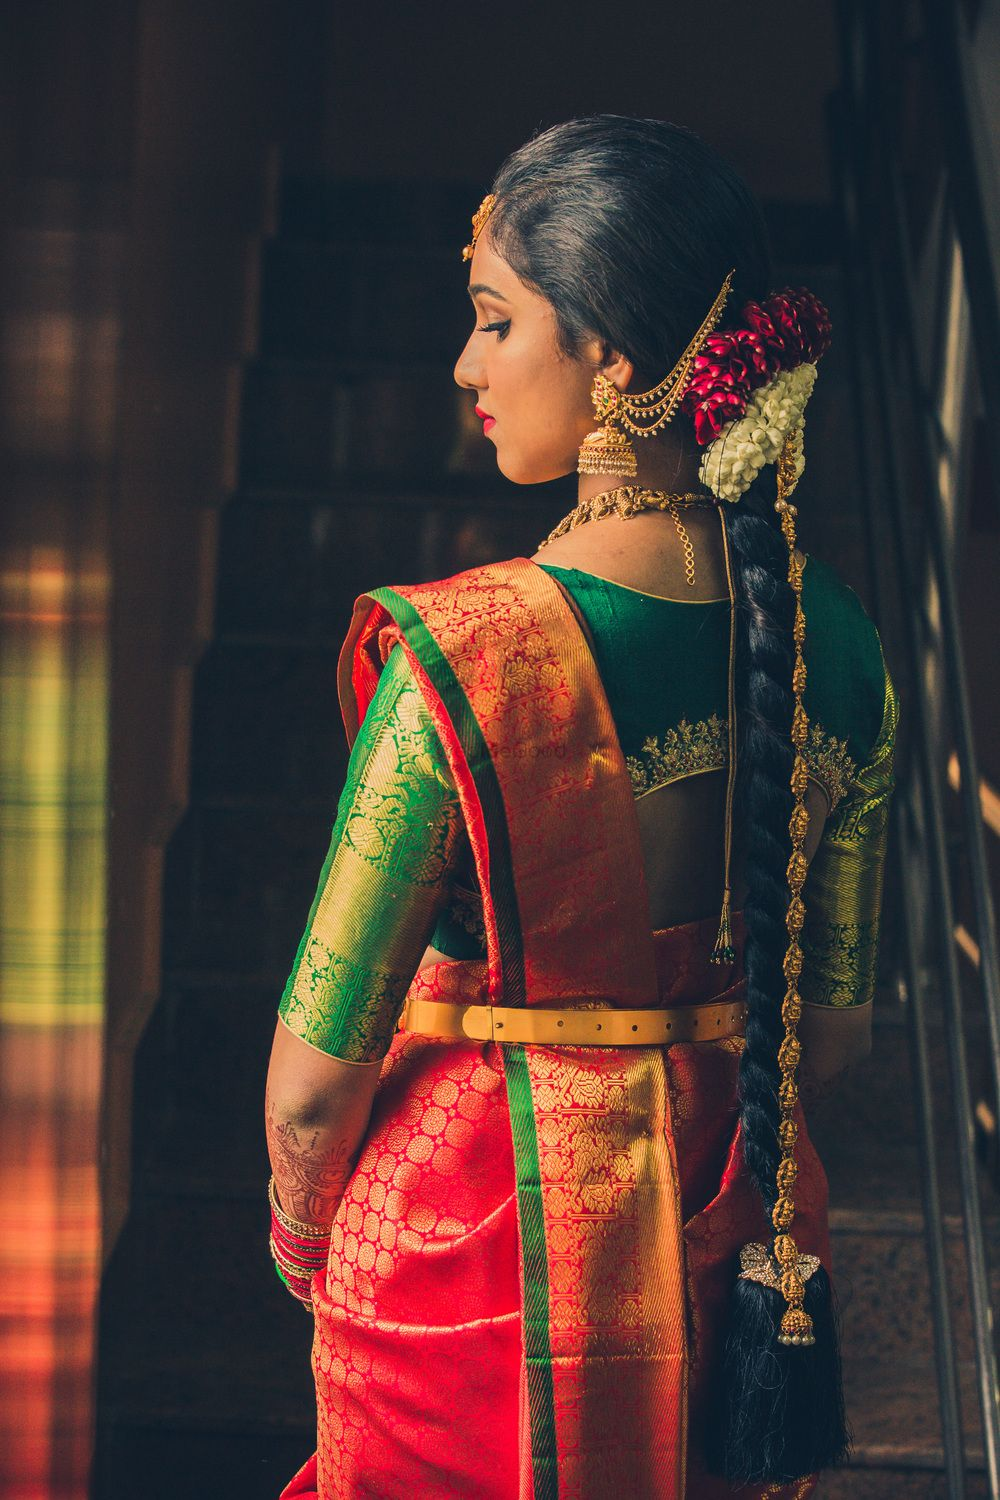 Photo of Bridal back shot South Indian bride with green blouse and orange saree